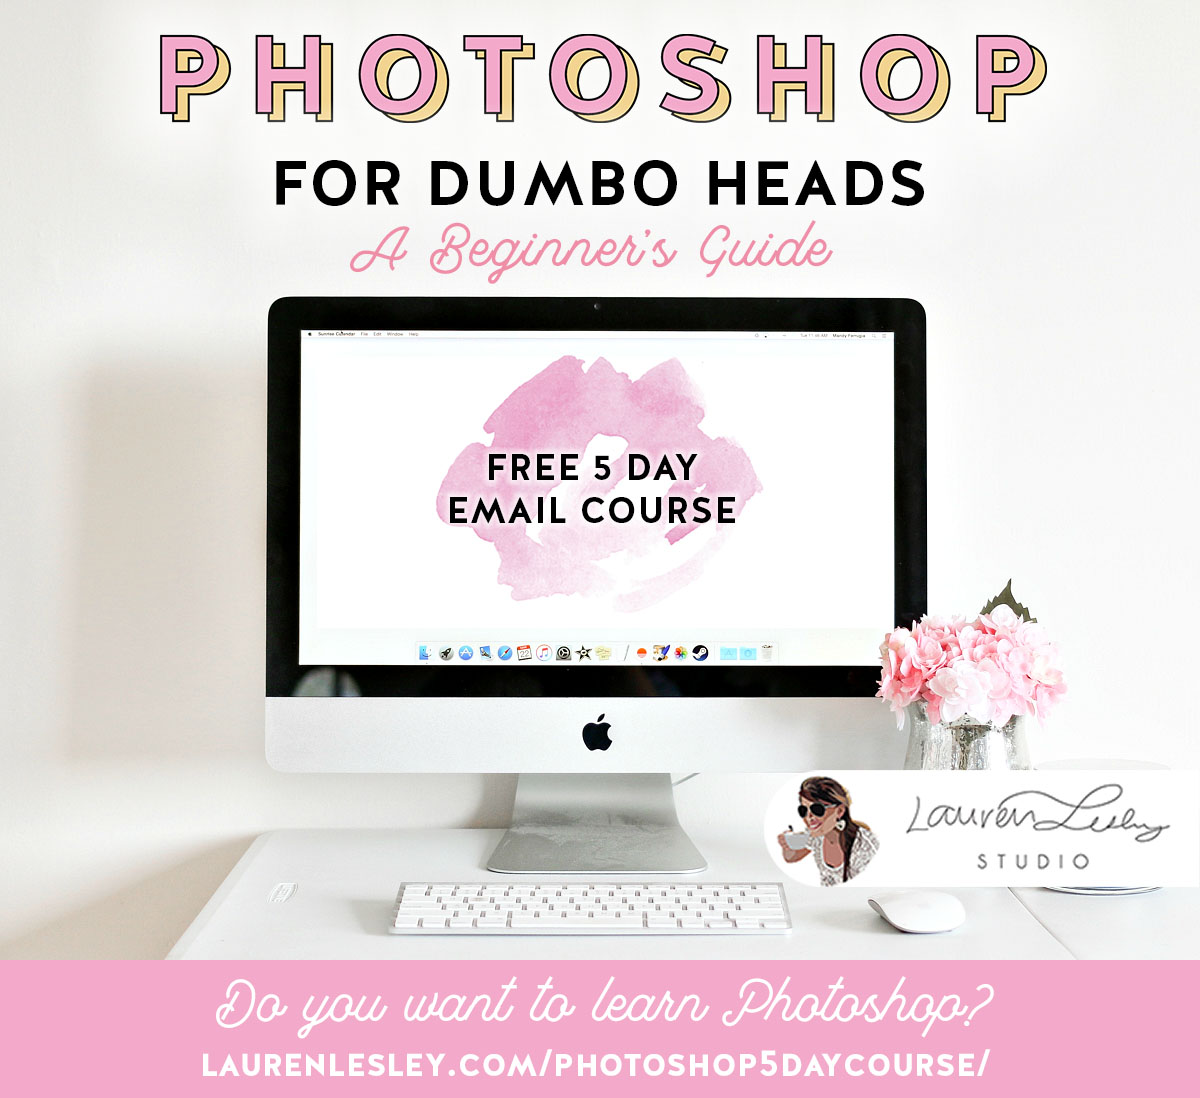 Lesson 1 - Photoshop for Dumbo Heads